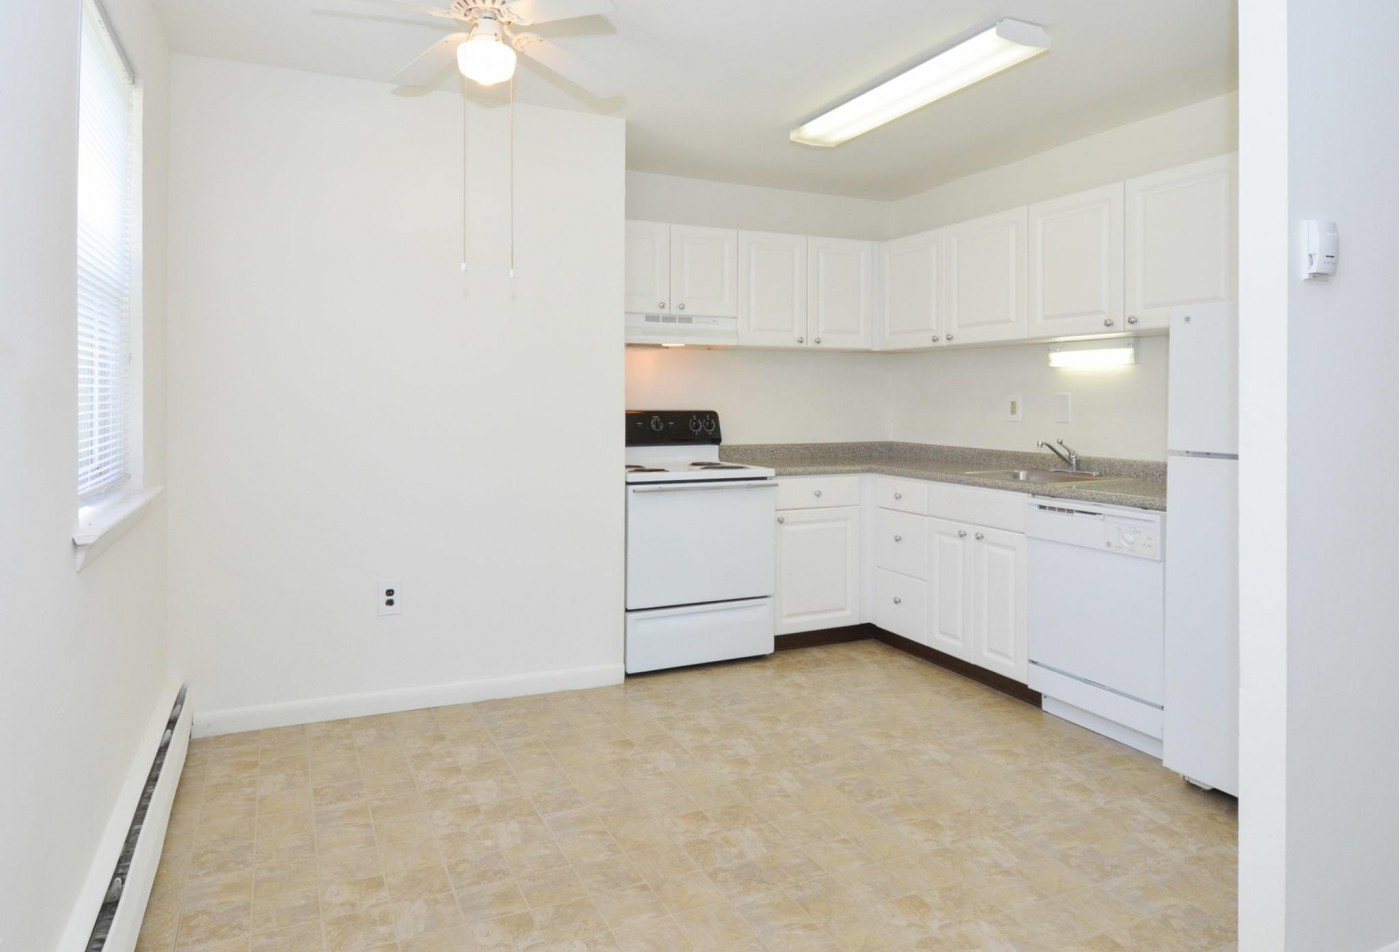 State-of-the-Art Kitchen | Phoenixville PA Apartment Homes | Independence Crossing Apartments